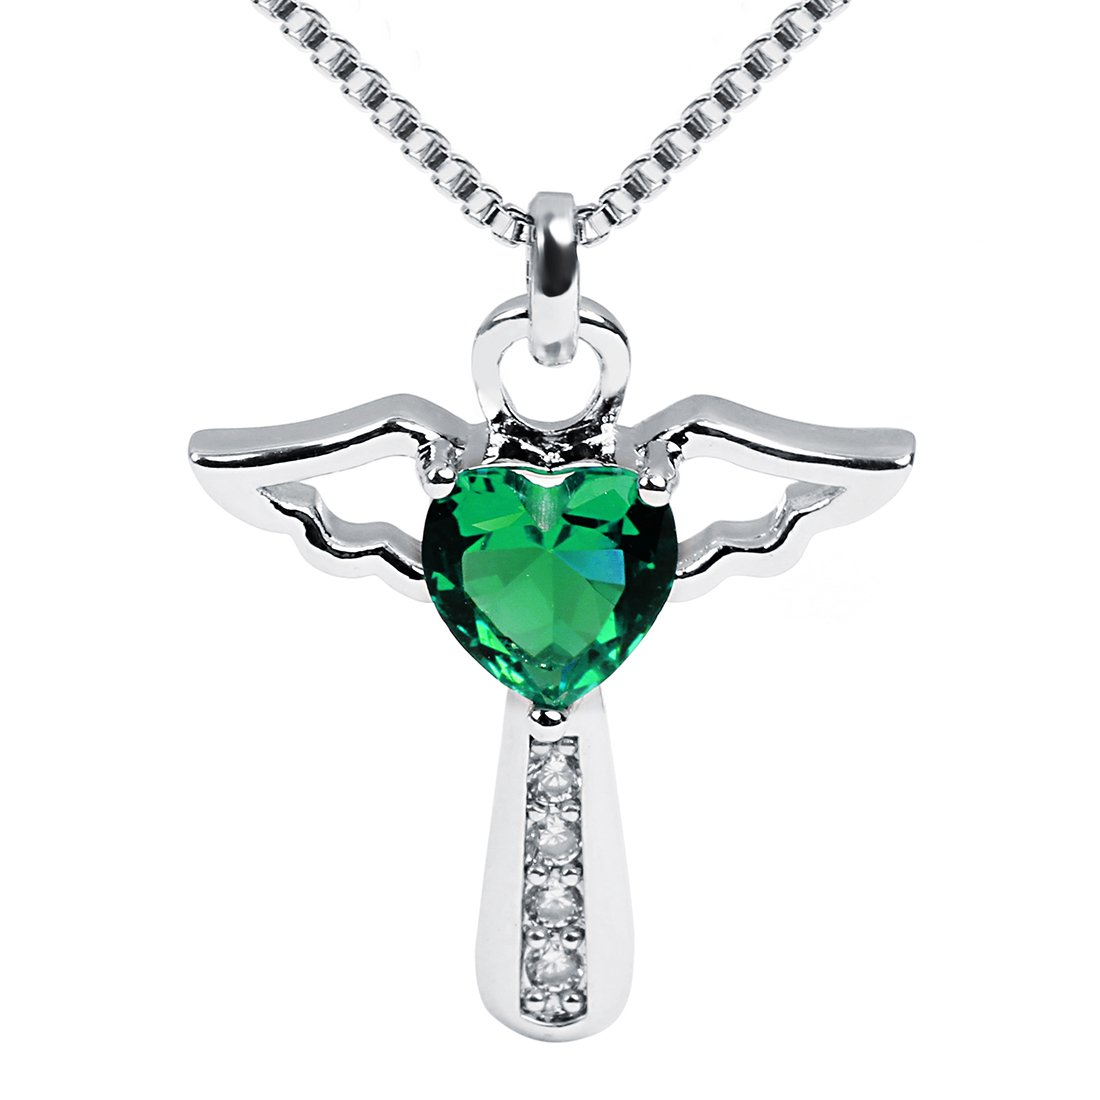 Ckysee Necklaces for Women Girls Cross Cubic Zirconia Angel Wing Birthstone Heart Charm Pendant Necklace Ckysee Jewelry